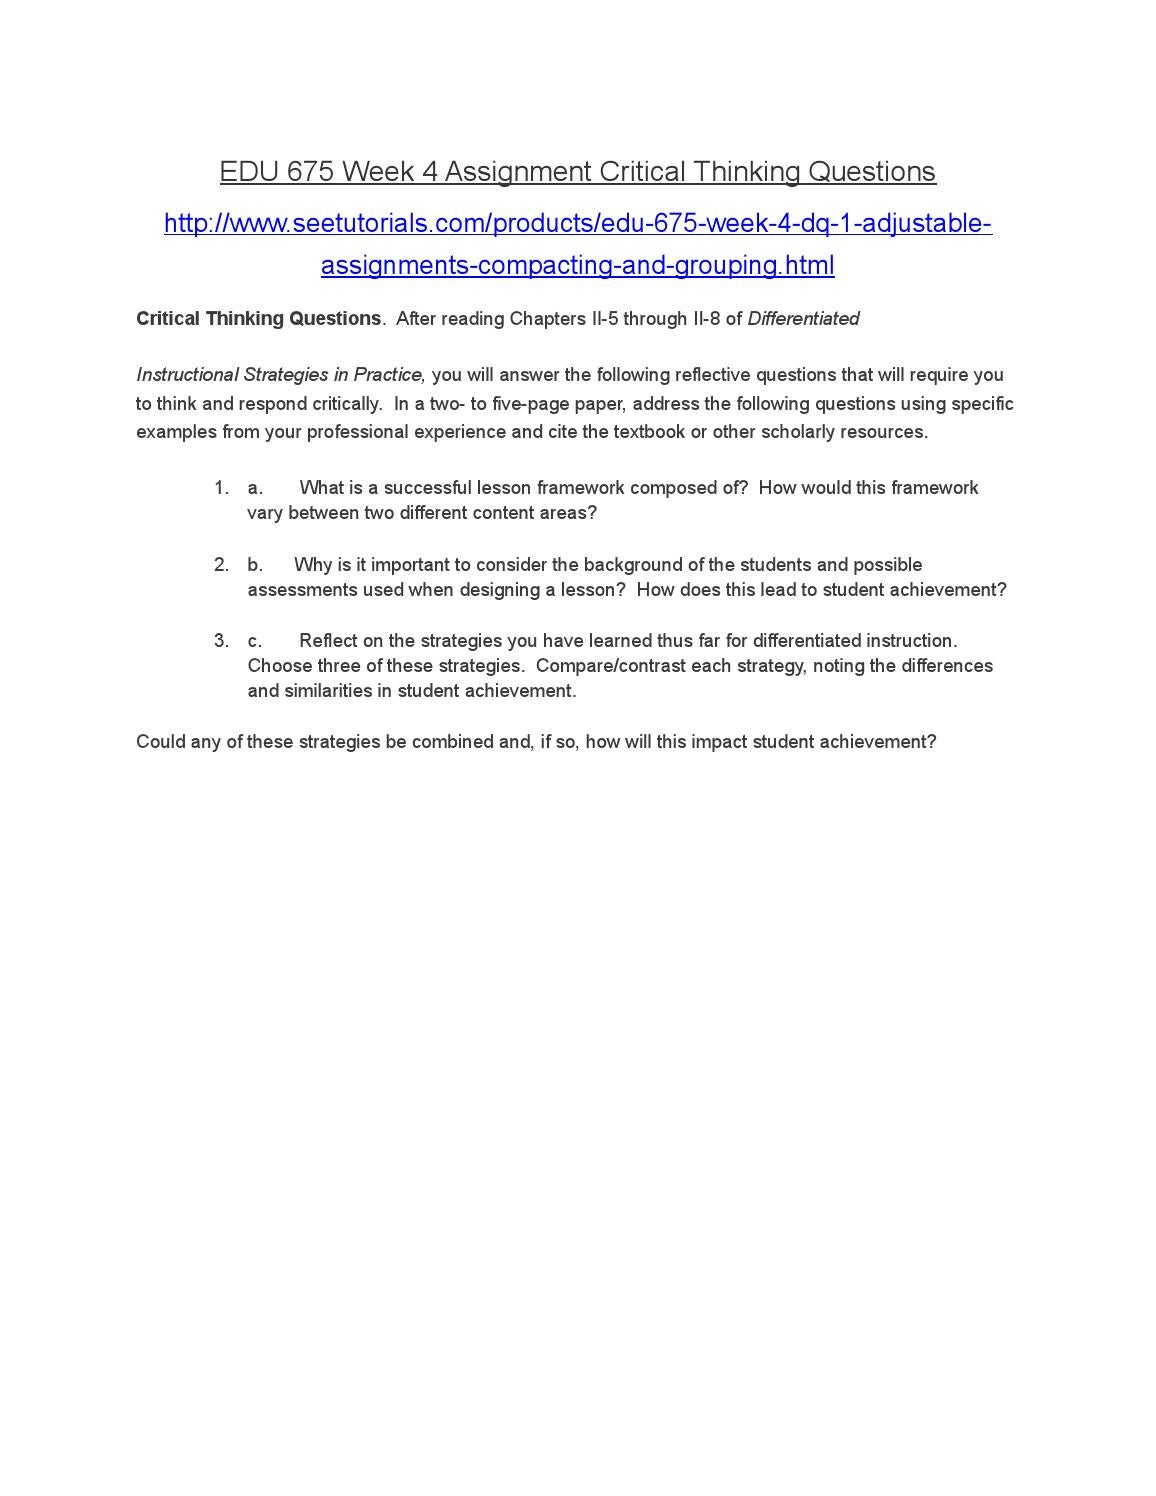 Assignment 2 critical thinking paper